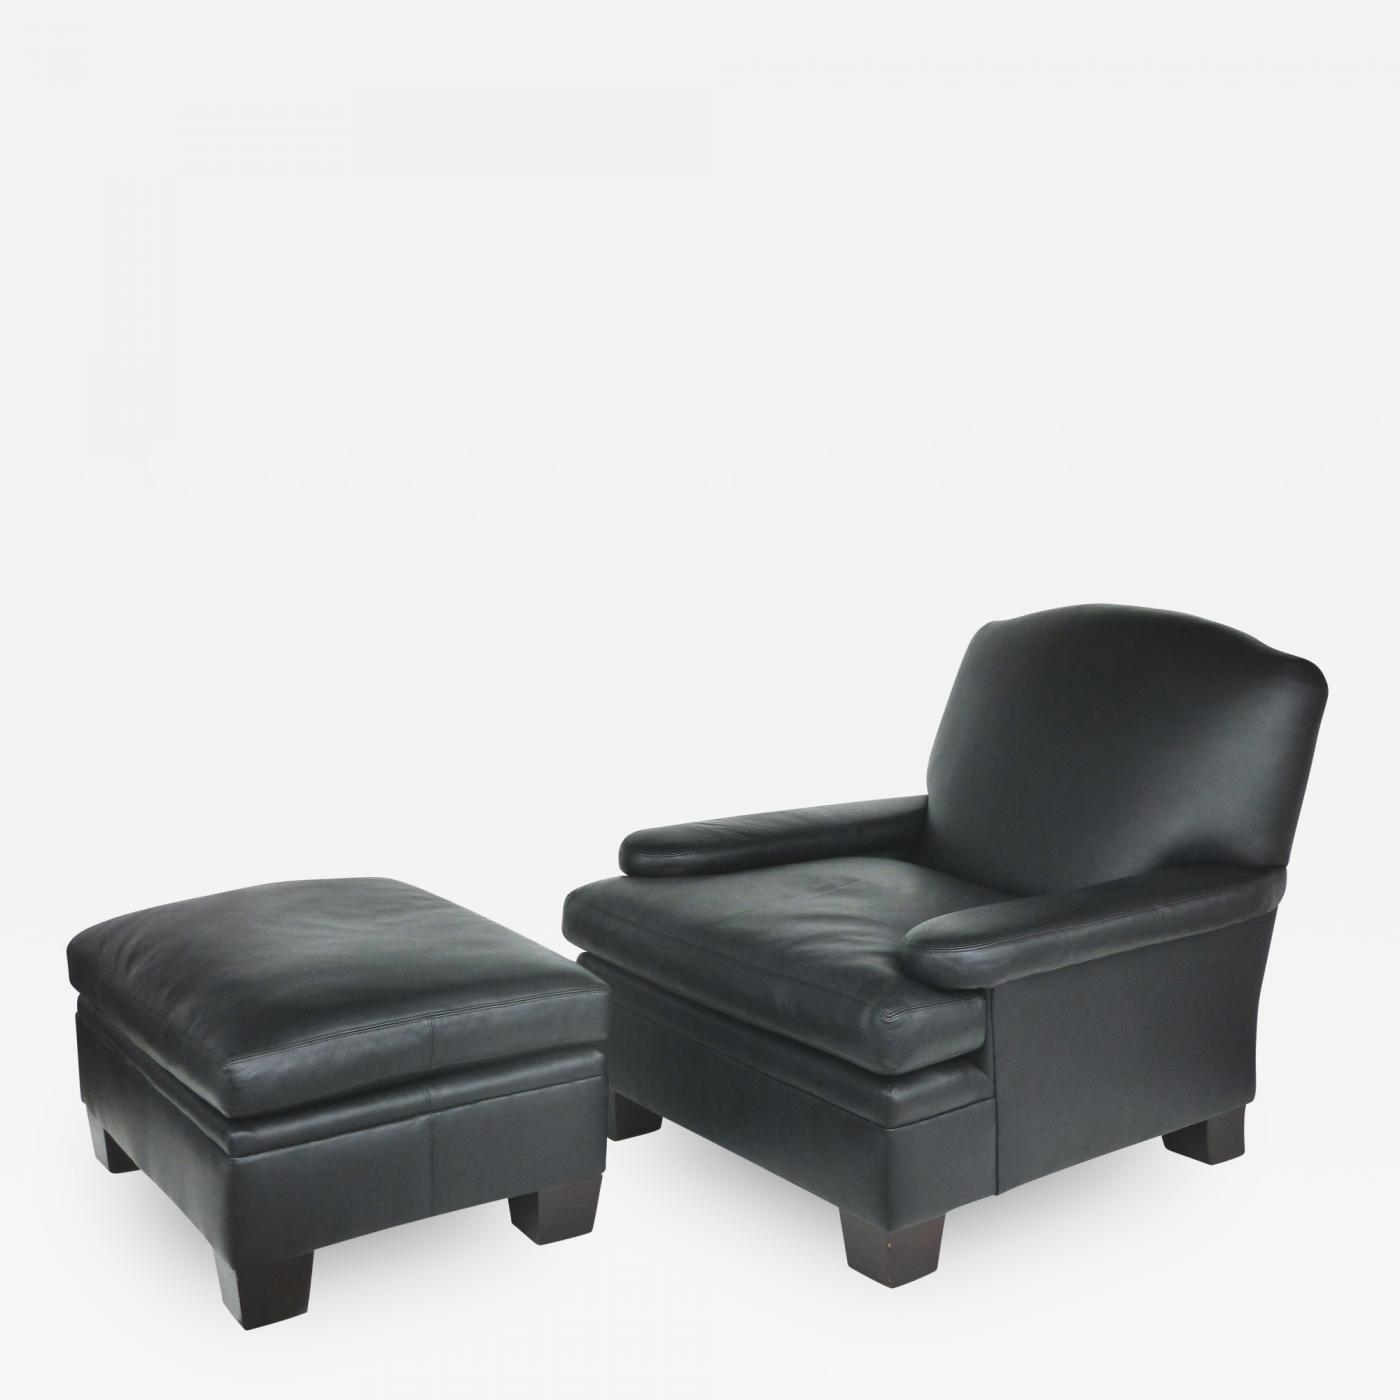 Astonishing Ralph Lauren Ralph Lauren London Leather Club Chair With Matching Ottoman 2 Sets Available Alphanode Cool Chair Designs And Ideas Alphanodeonline